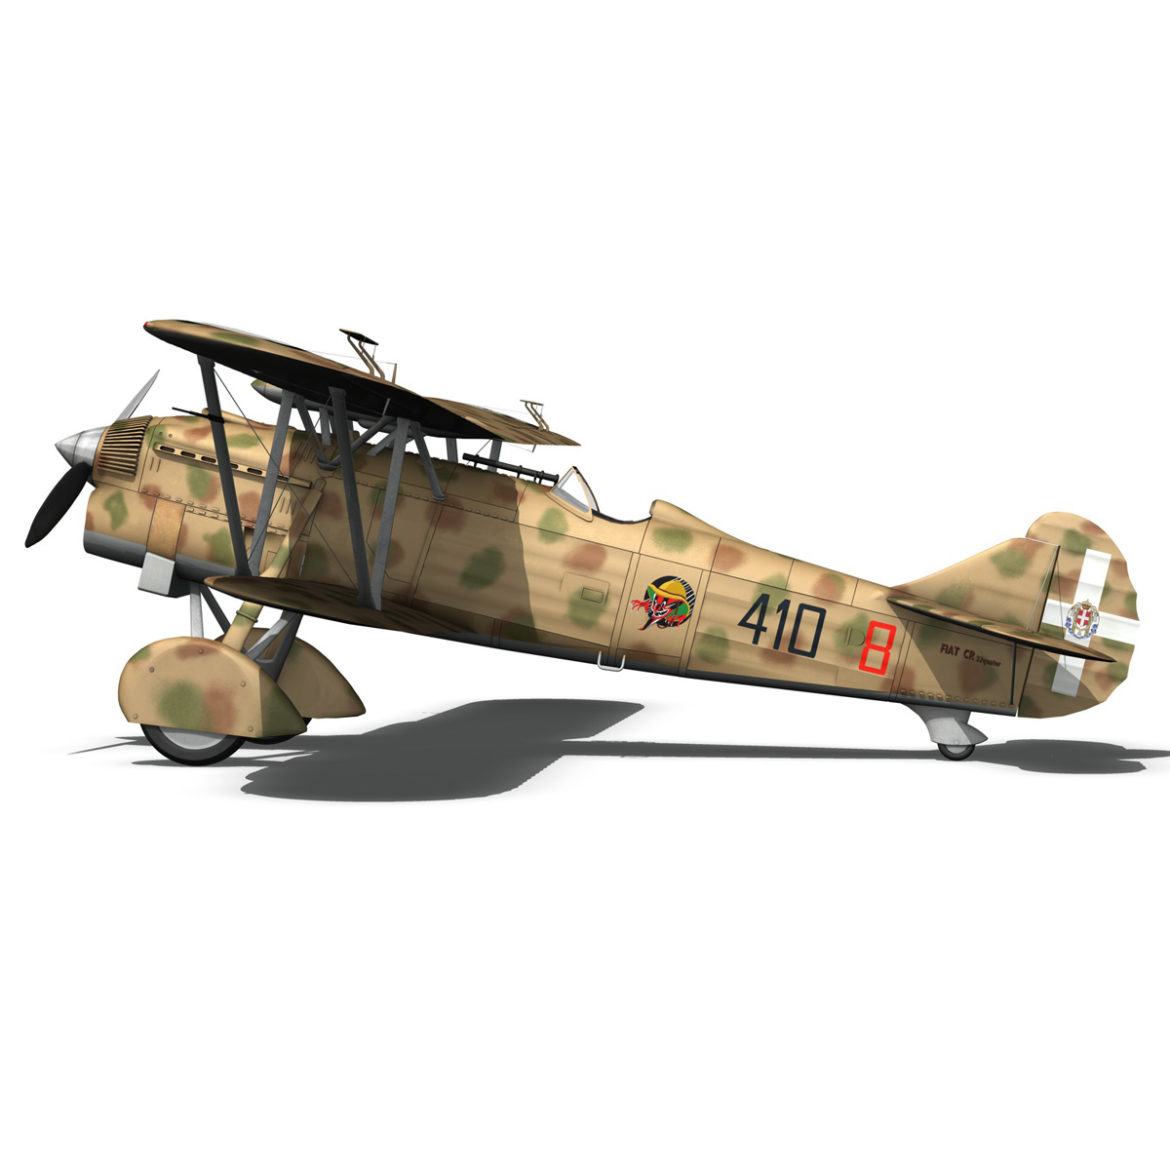 fiat cr.32 – italy airforce – 410 squadriglia 3d model fbx c4d lwo obj 307553